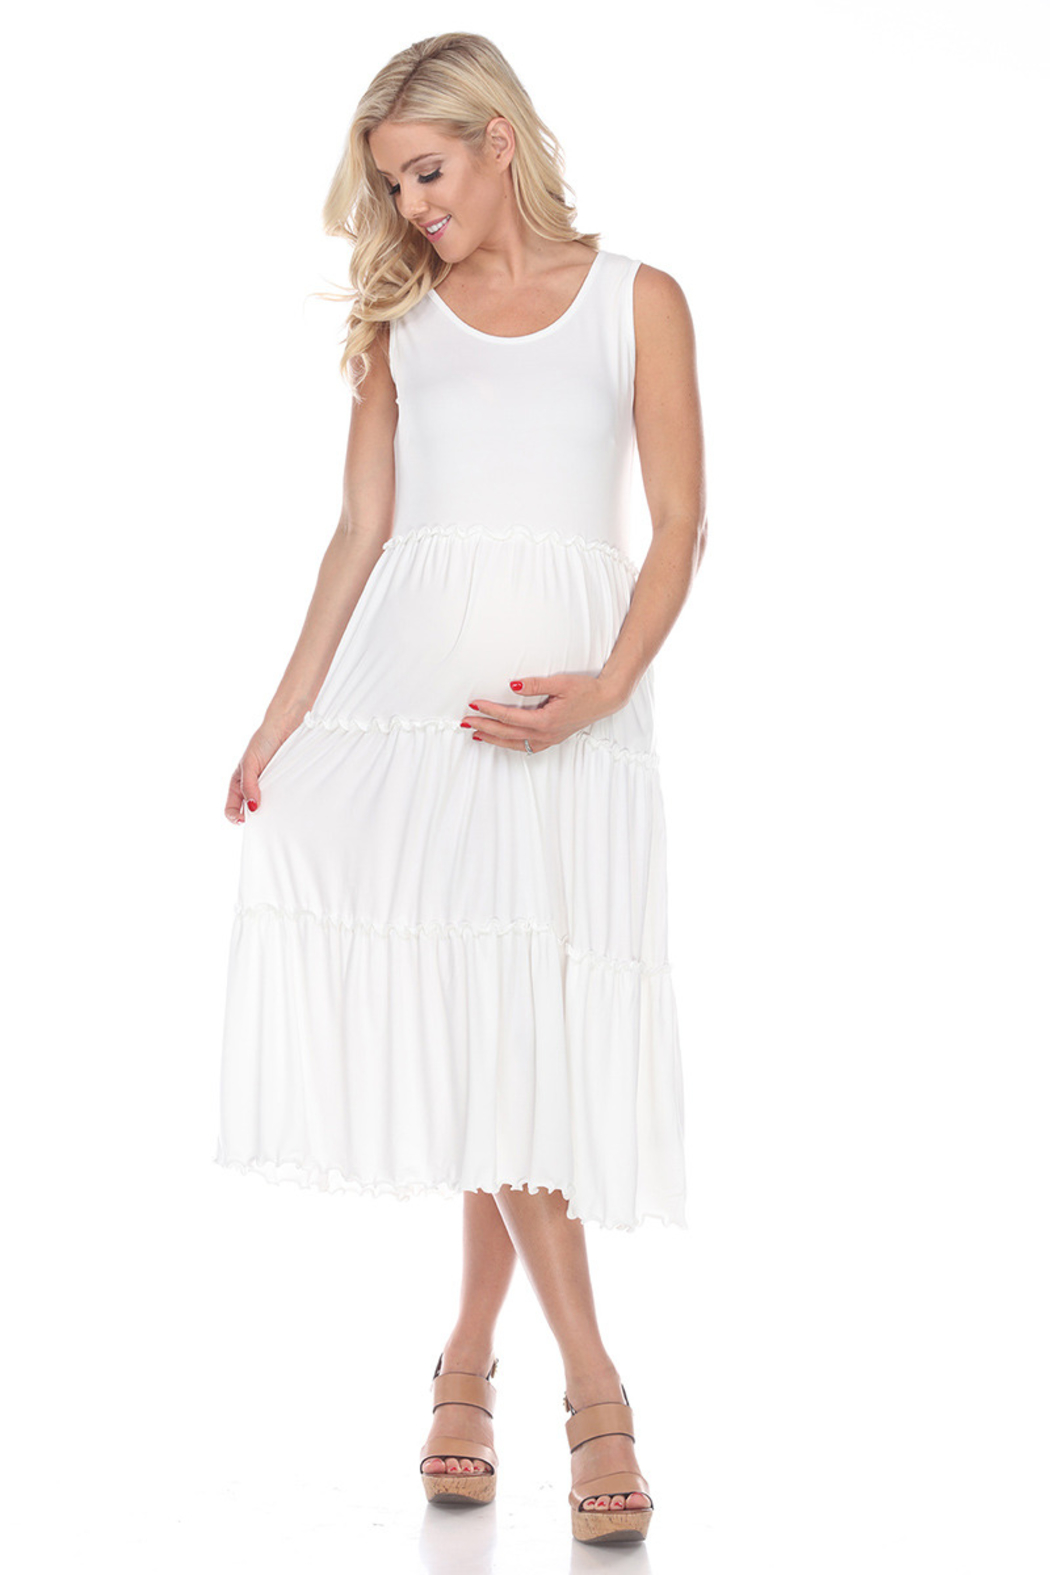 WhiteMark White Mark's Maternity Plus Size Scoop Neck Teired Midi Dress - Side Cropped Image